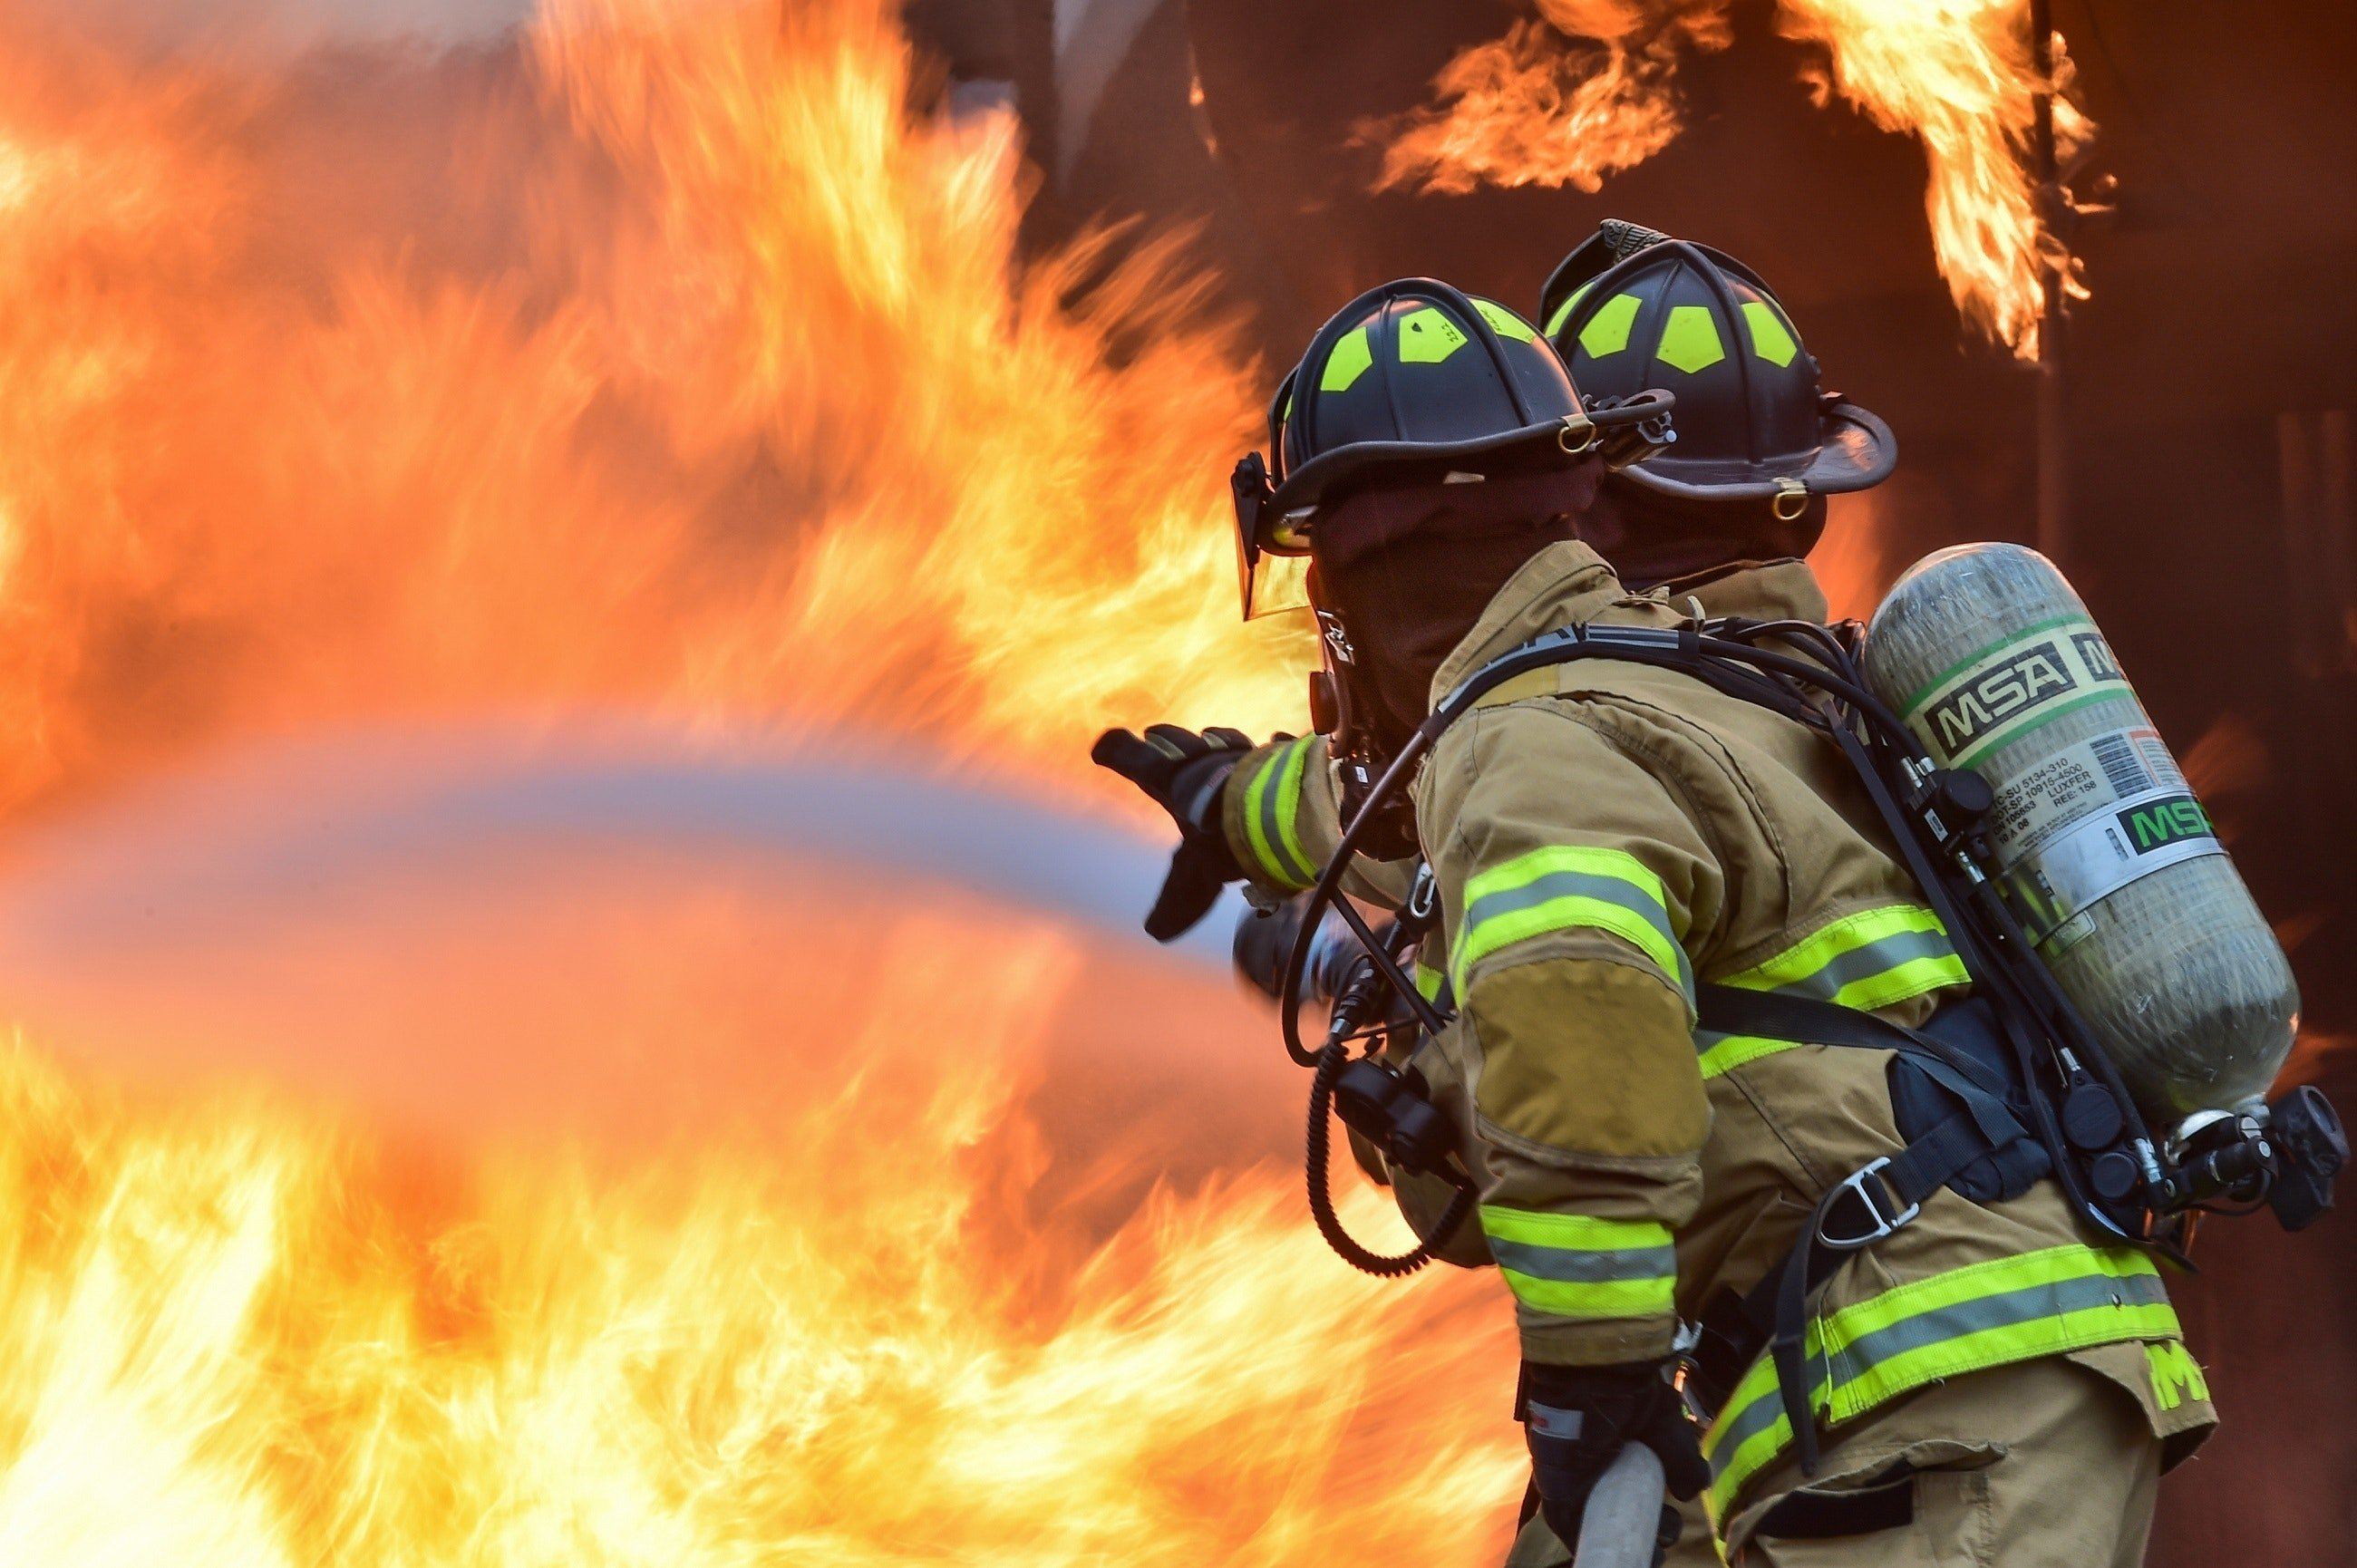 Firefighter fighting a fire. | Source: Pexels/ Pixabay